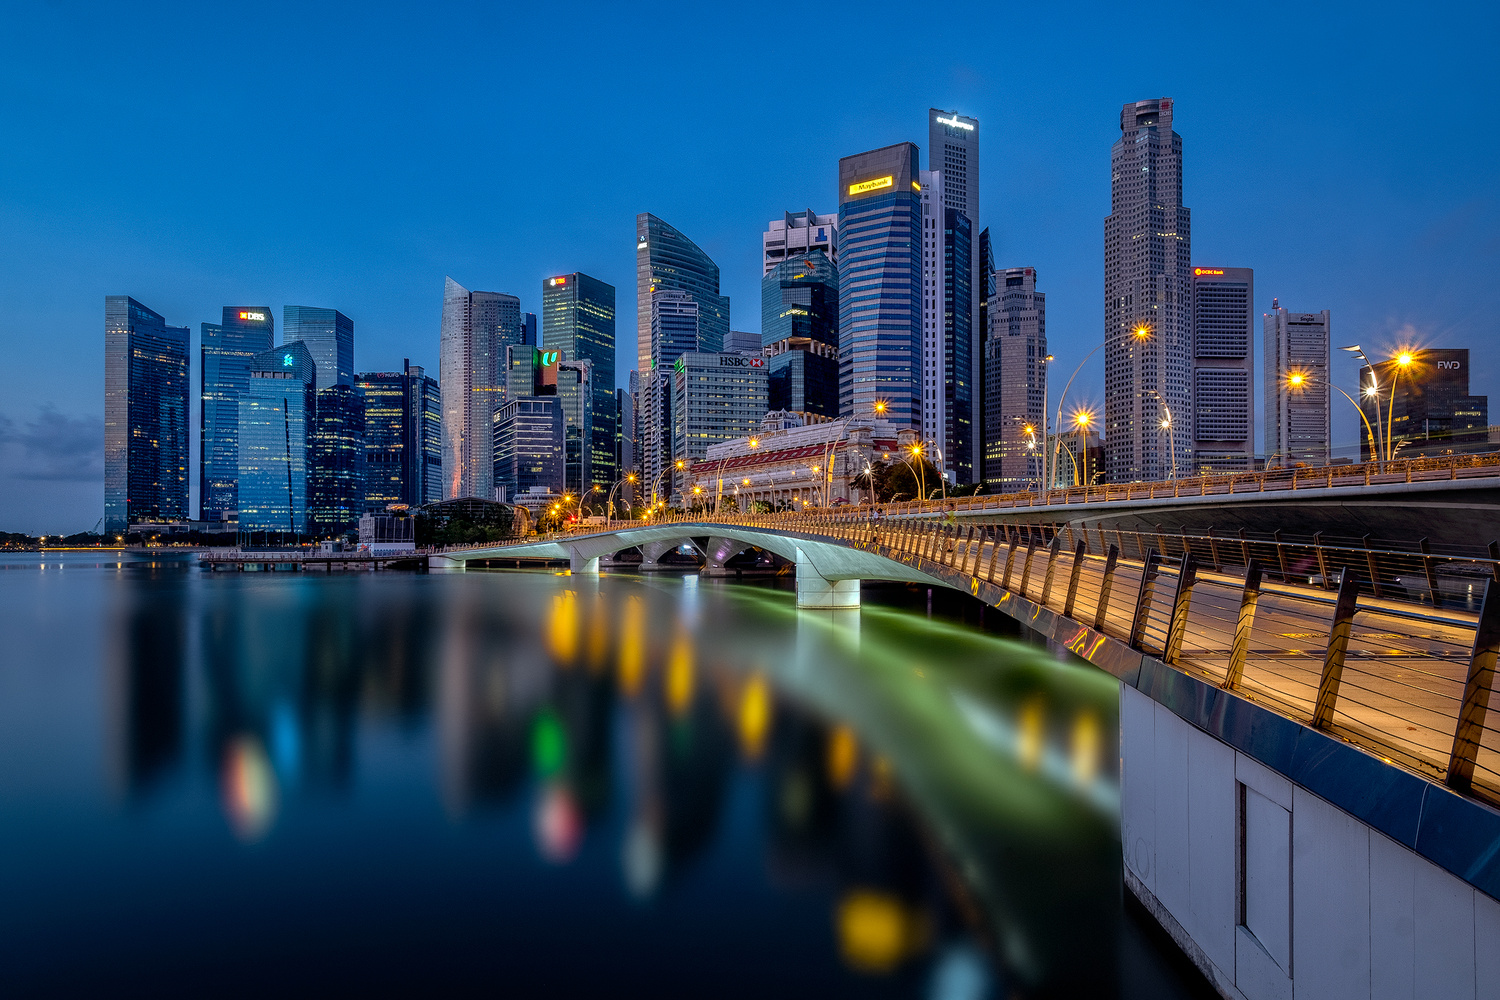 Singapore Before Dawn by John Kimwell Laluma